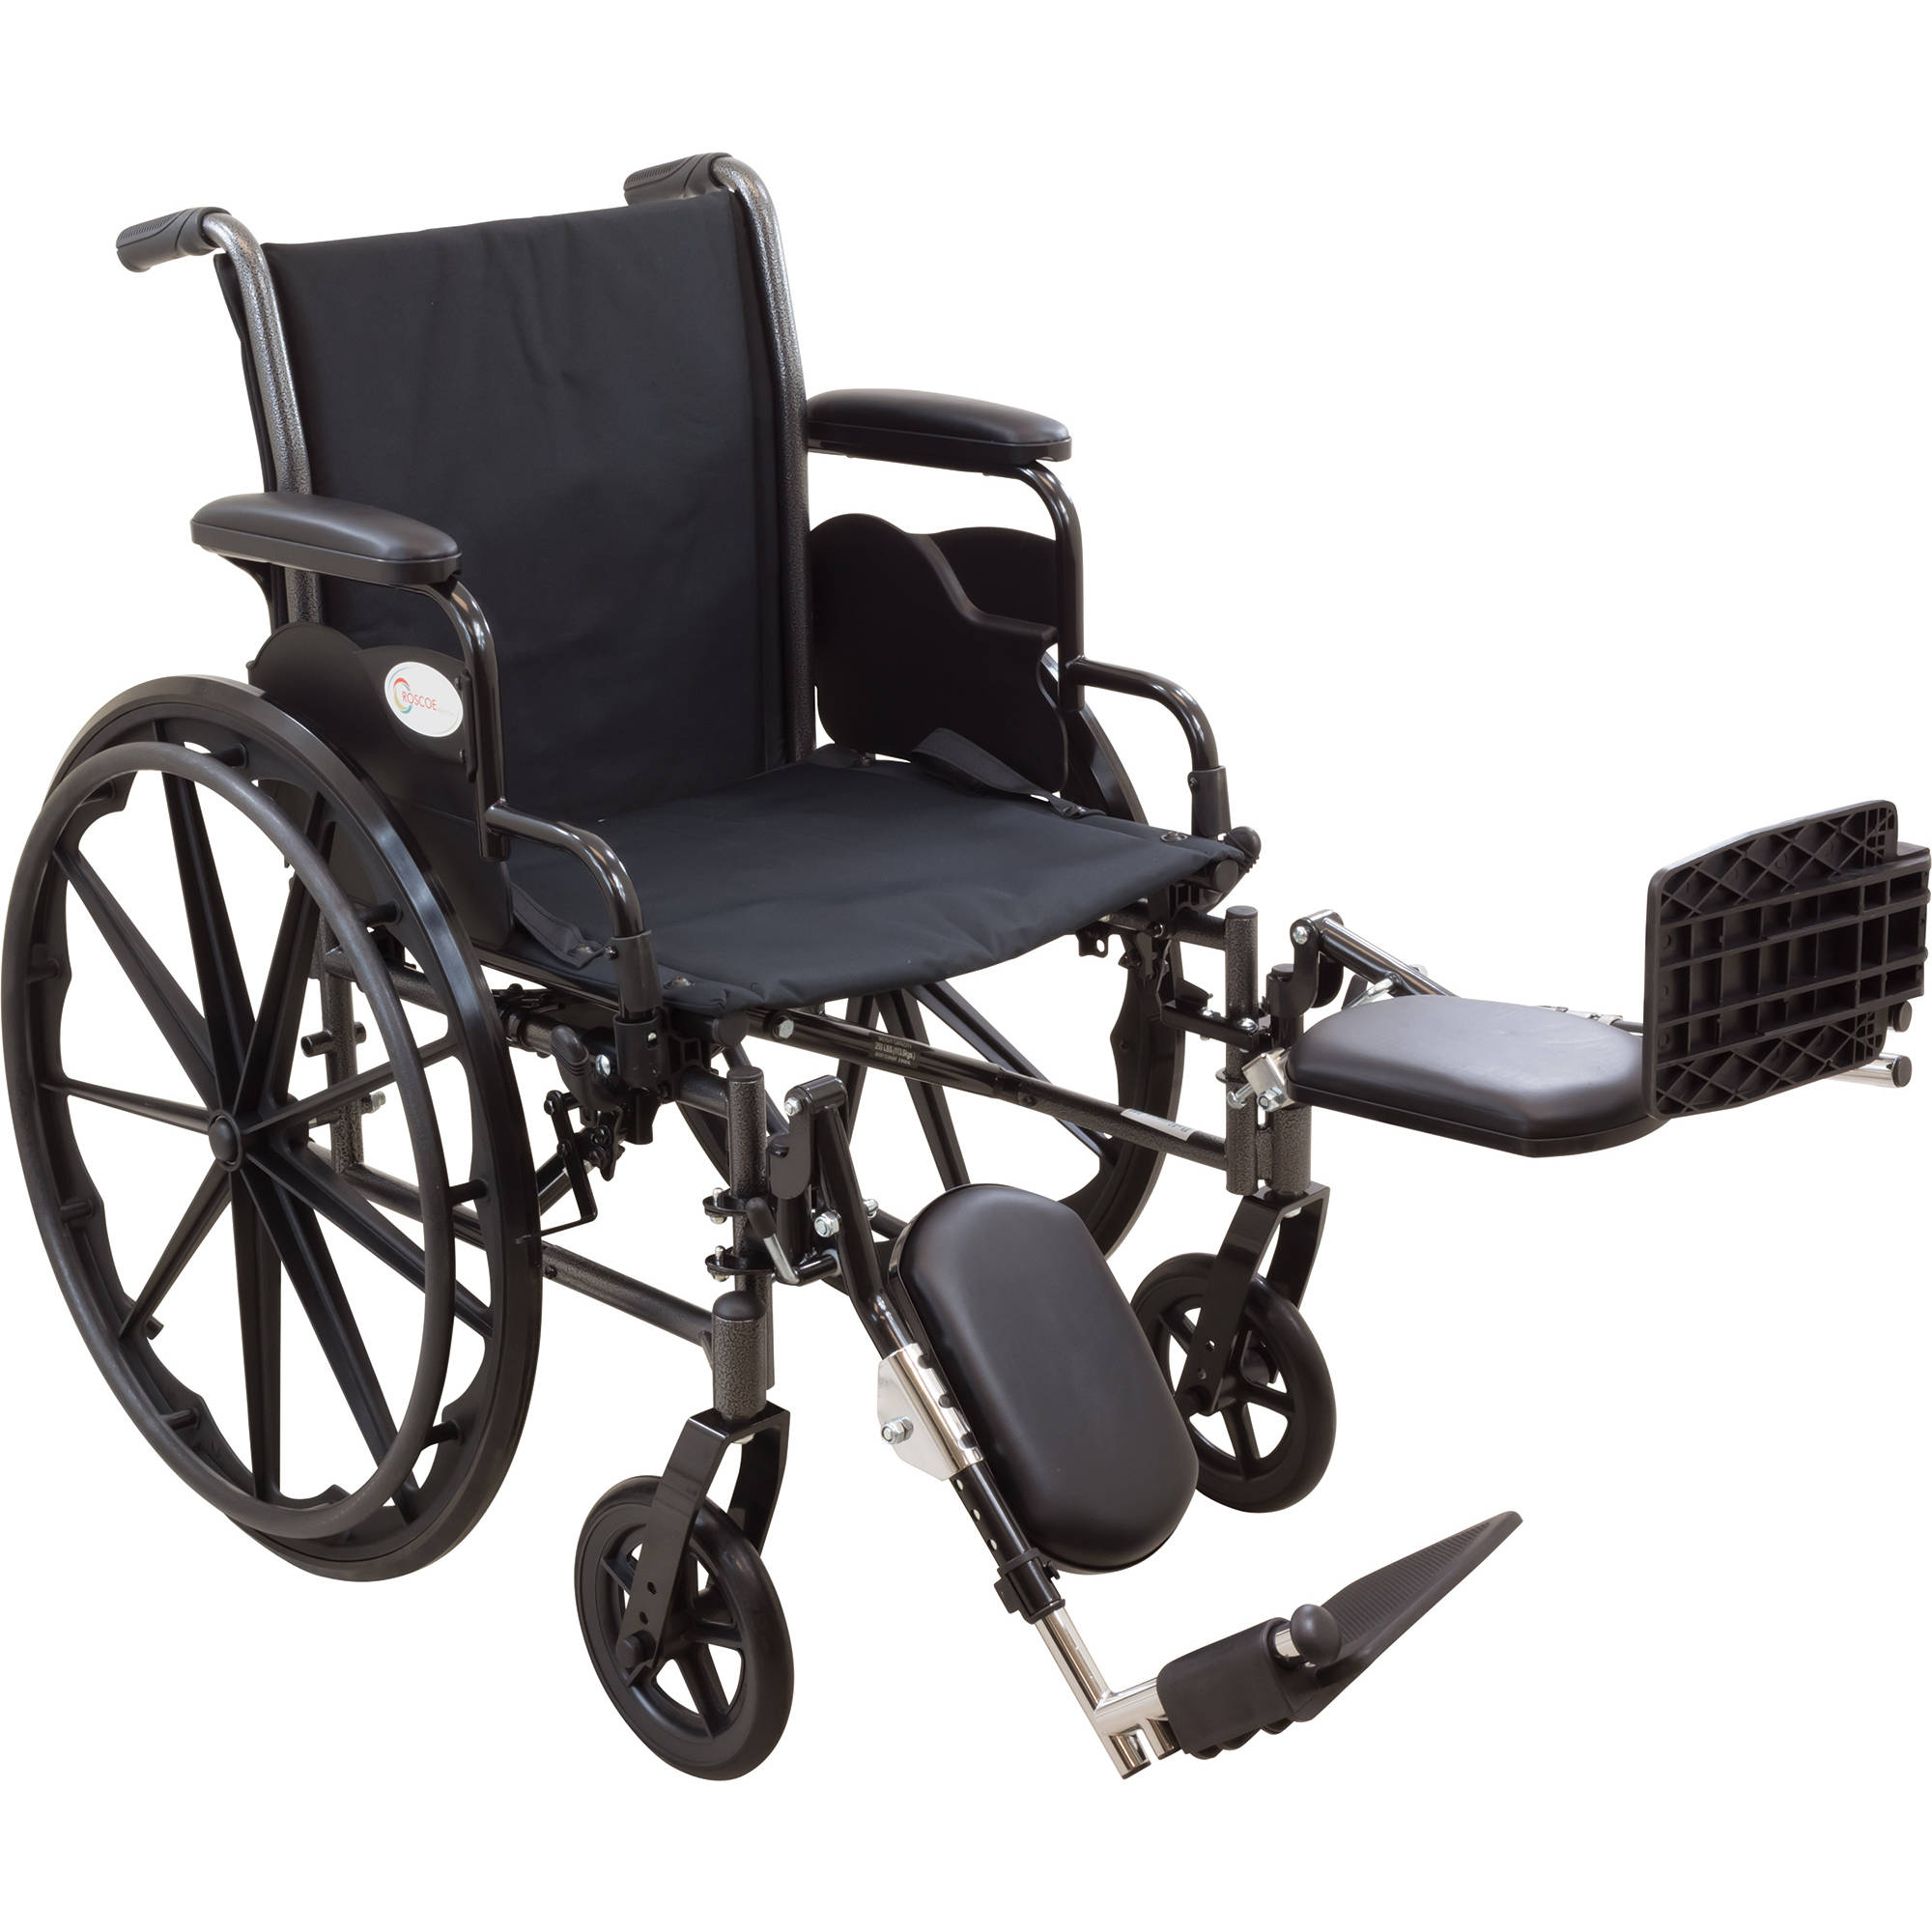 "Roscoe Reliance III Wheelchair, 20"" Seat with Elevating Legrests"